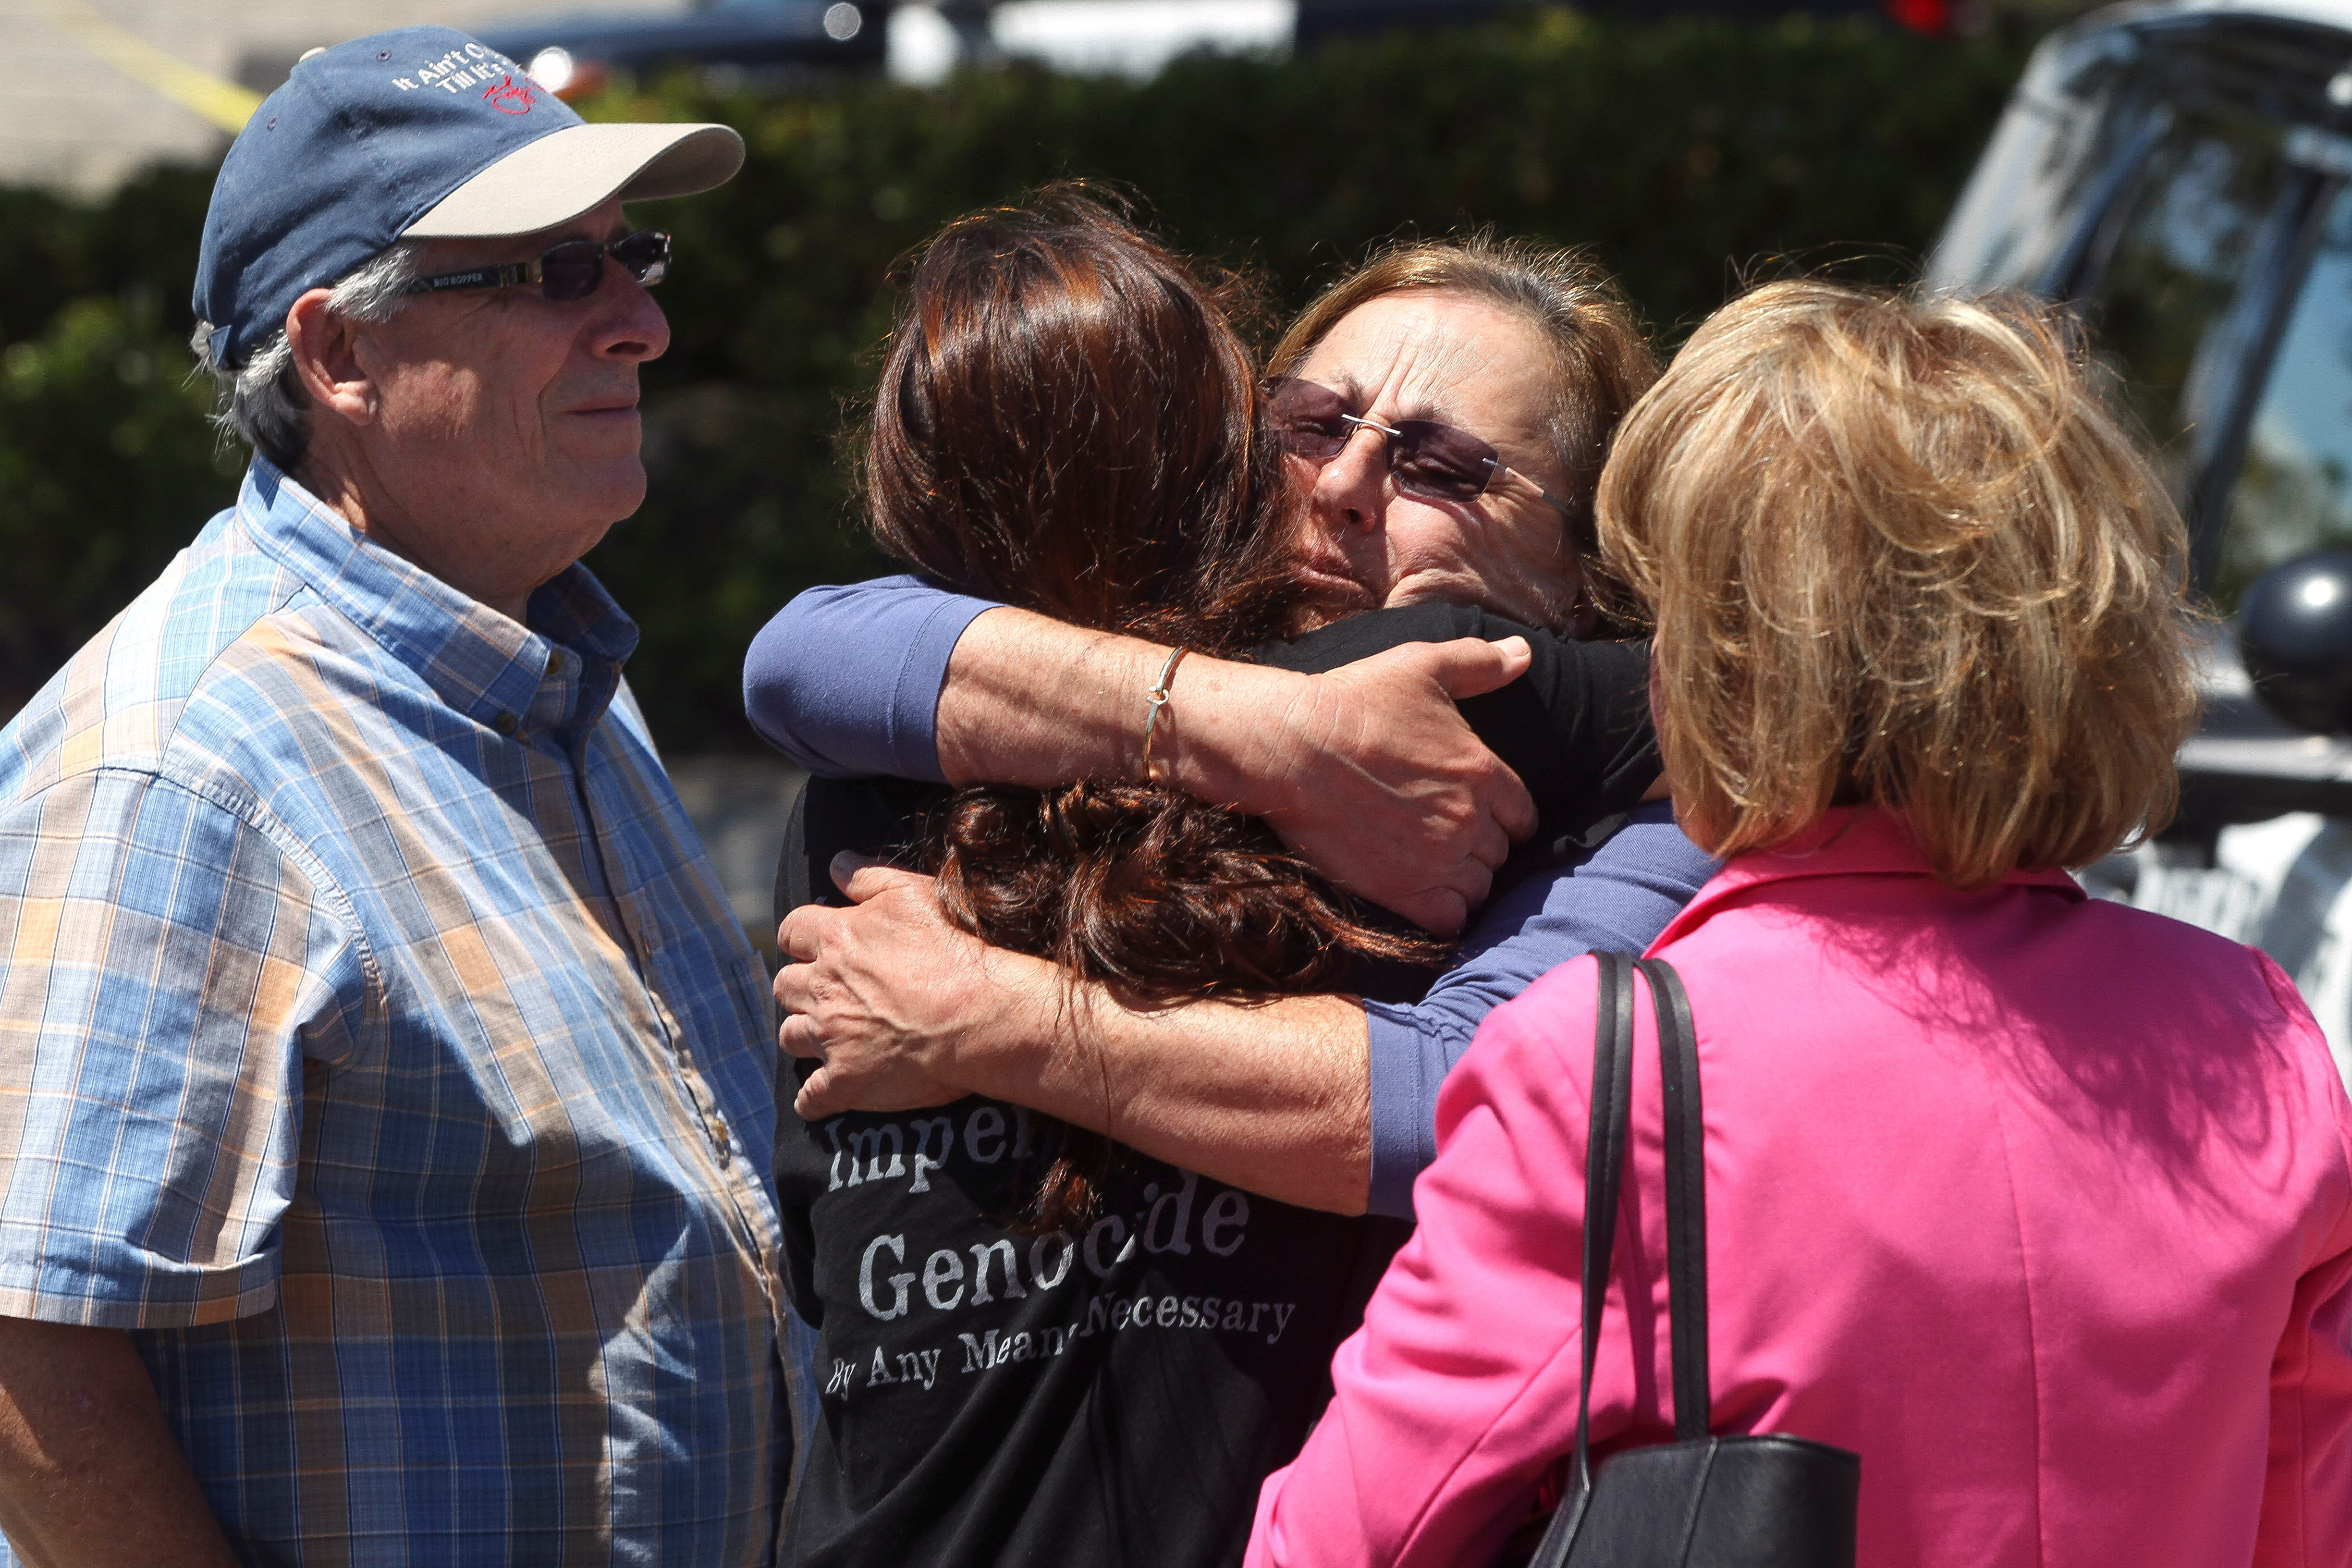 Members of the Chabad synagogue hug as they gather near the Altman Family Chabad Community Center, Saturday, April 27, 2019 in Poway, California.